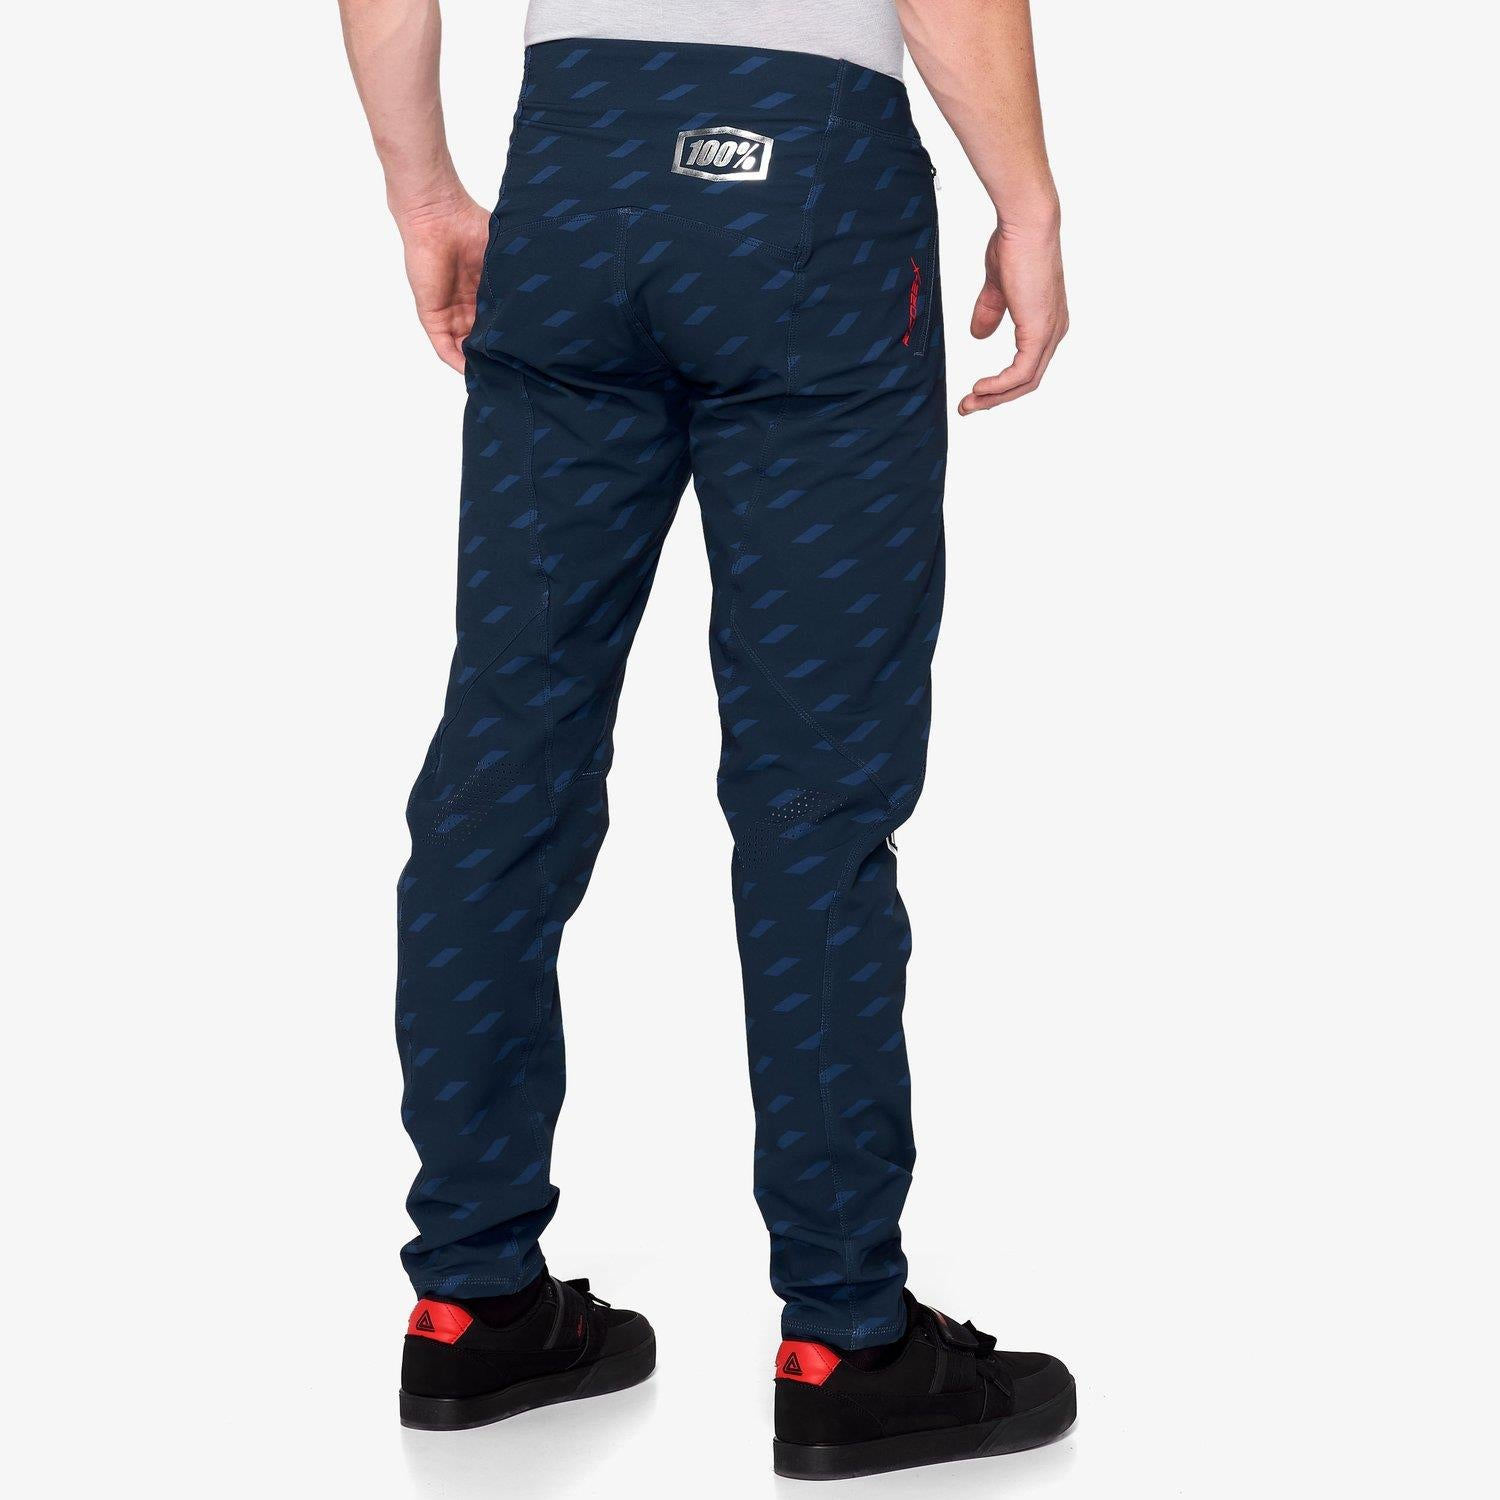 100% R-Core X Race Limited Edition Pants - Navy/White